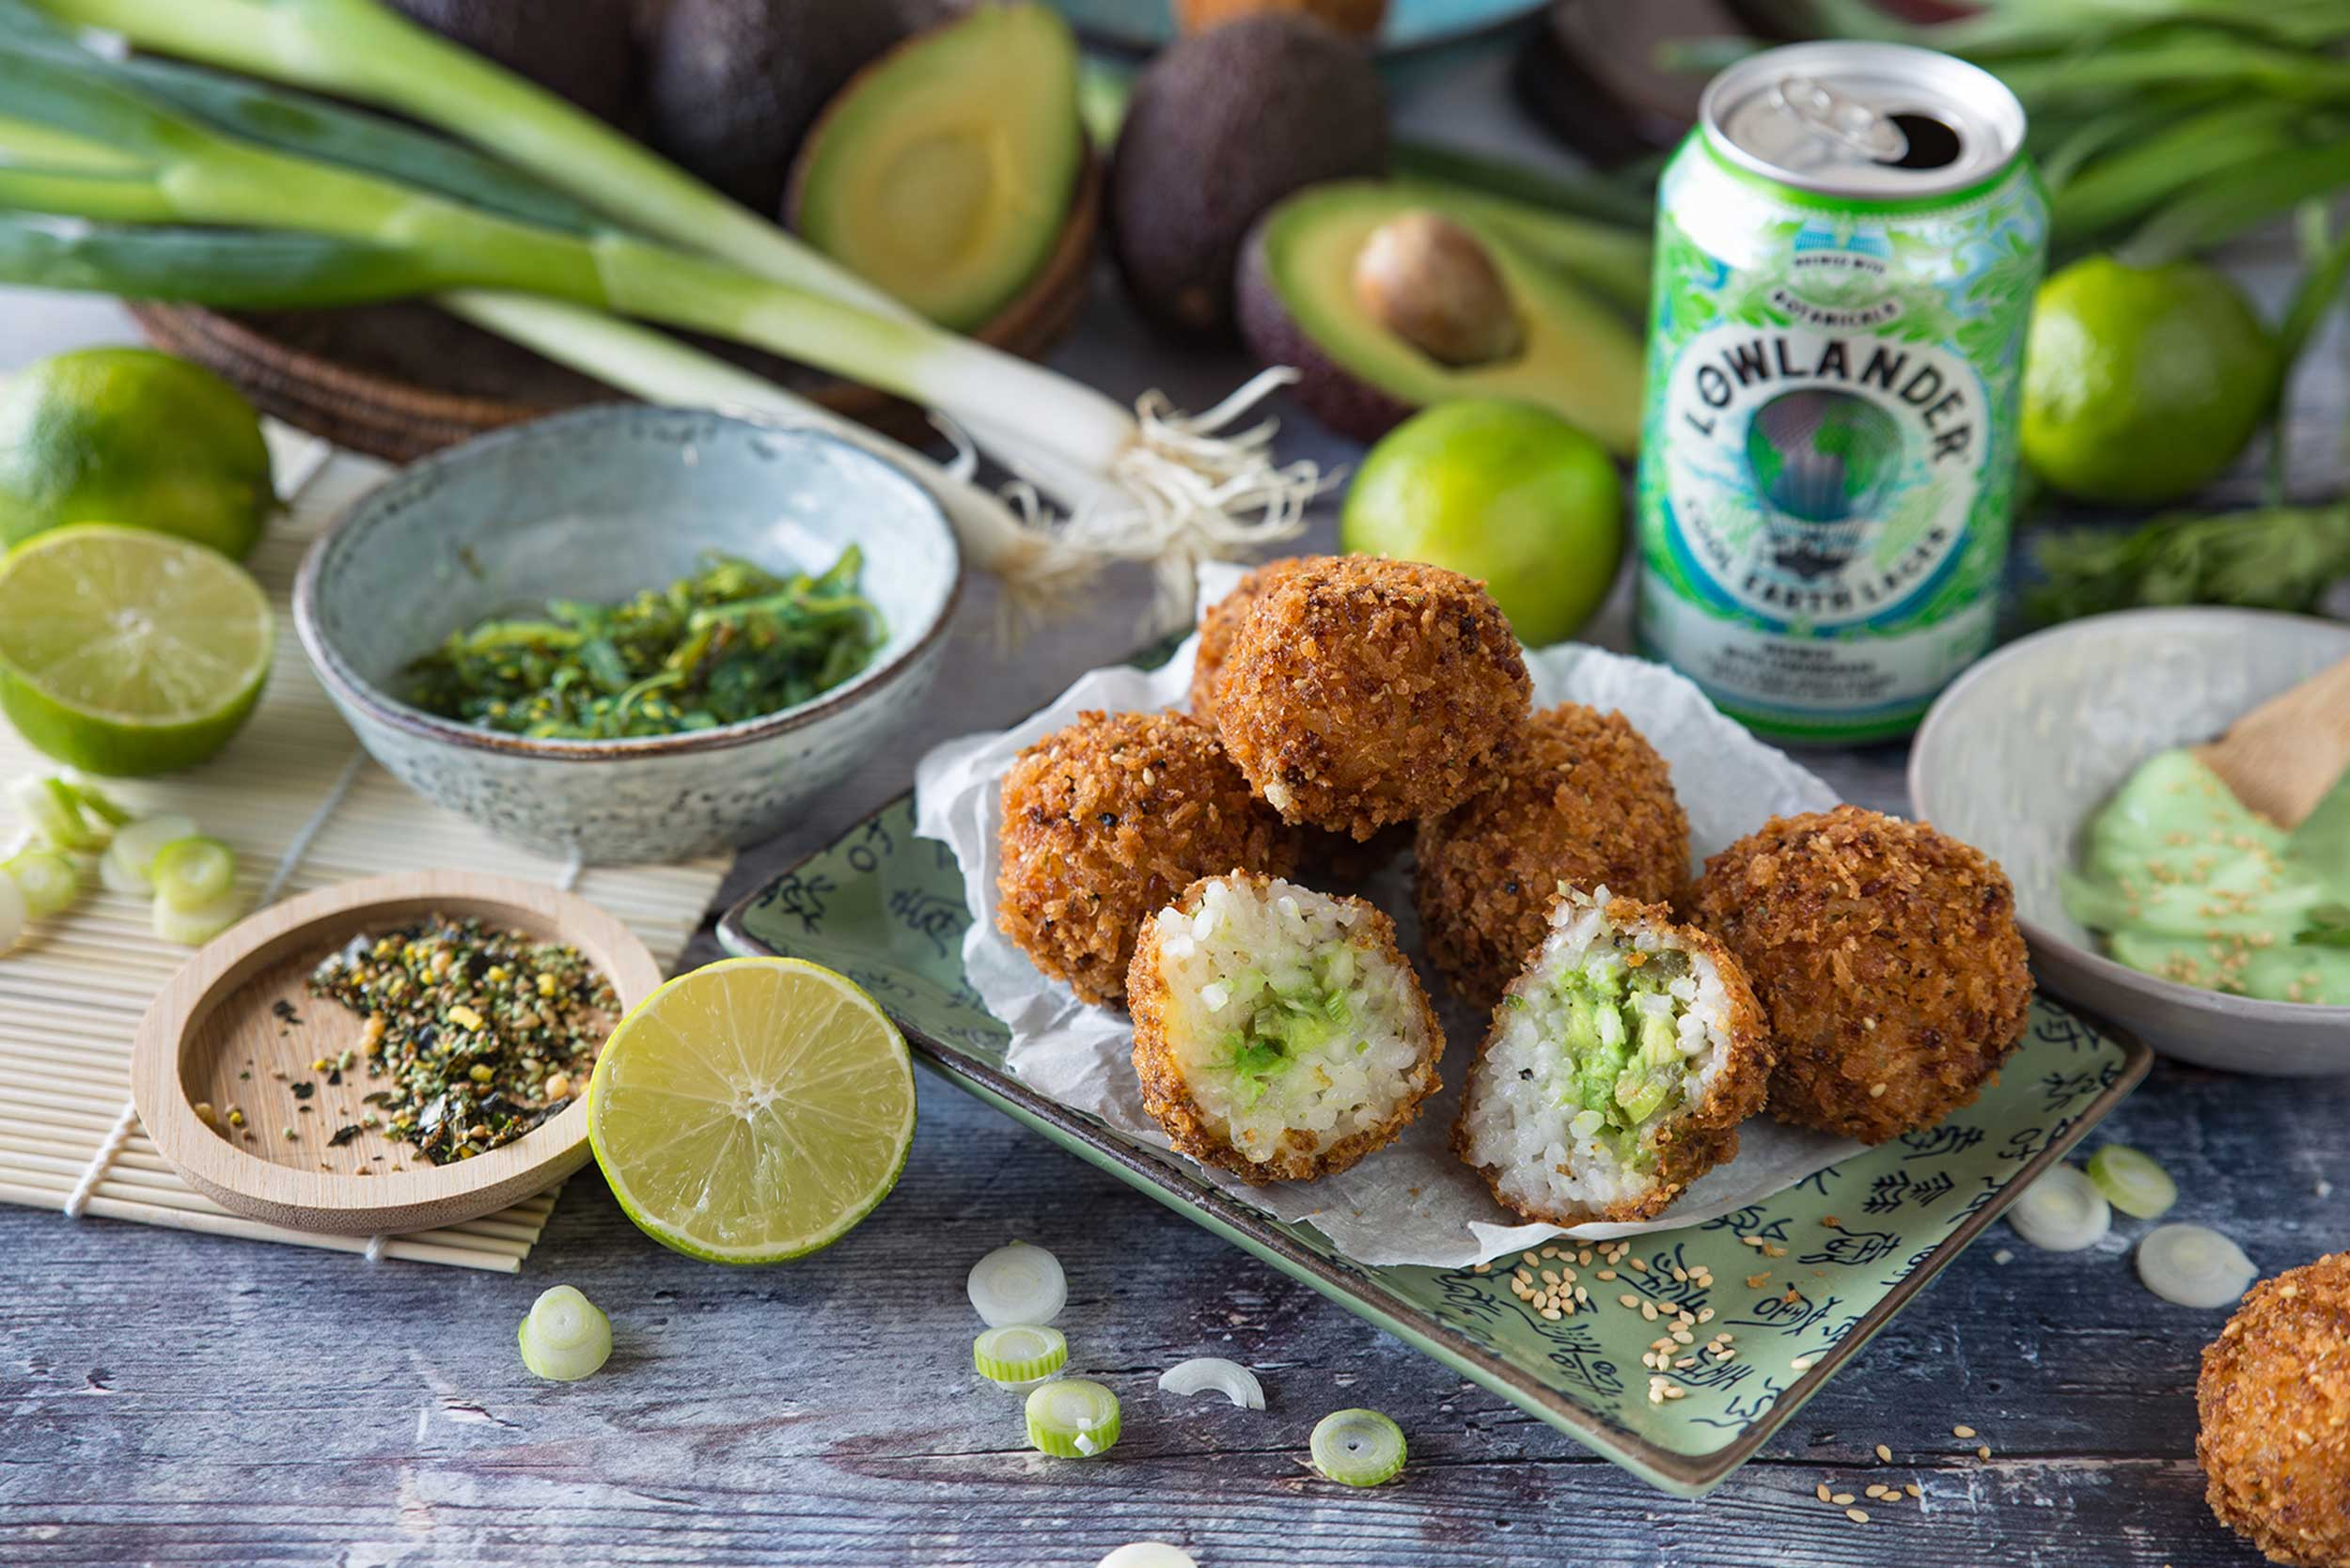 Lowlander Botanical Beers_Recipe_Foodpairing_Cool Earth Lager_ Crispy Rice Bites_landscape